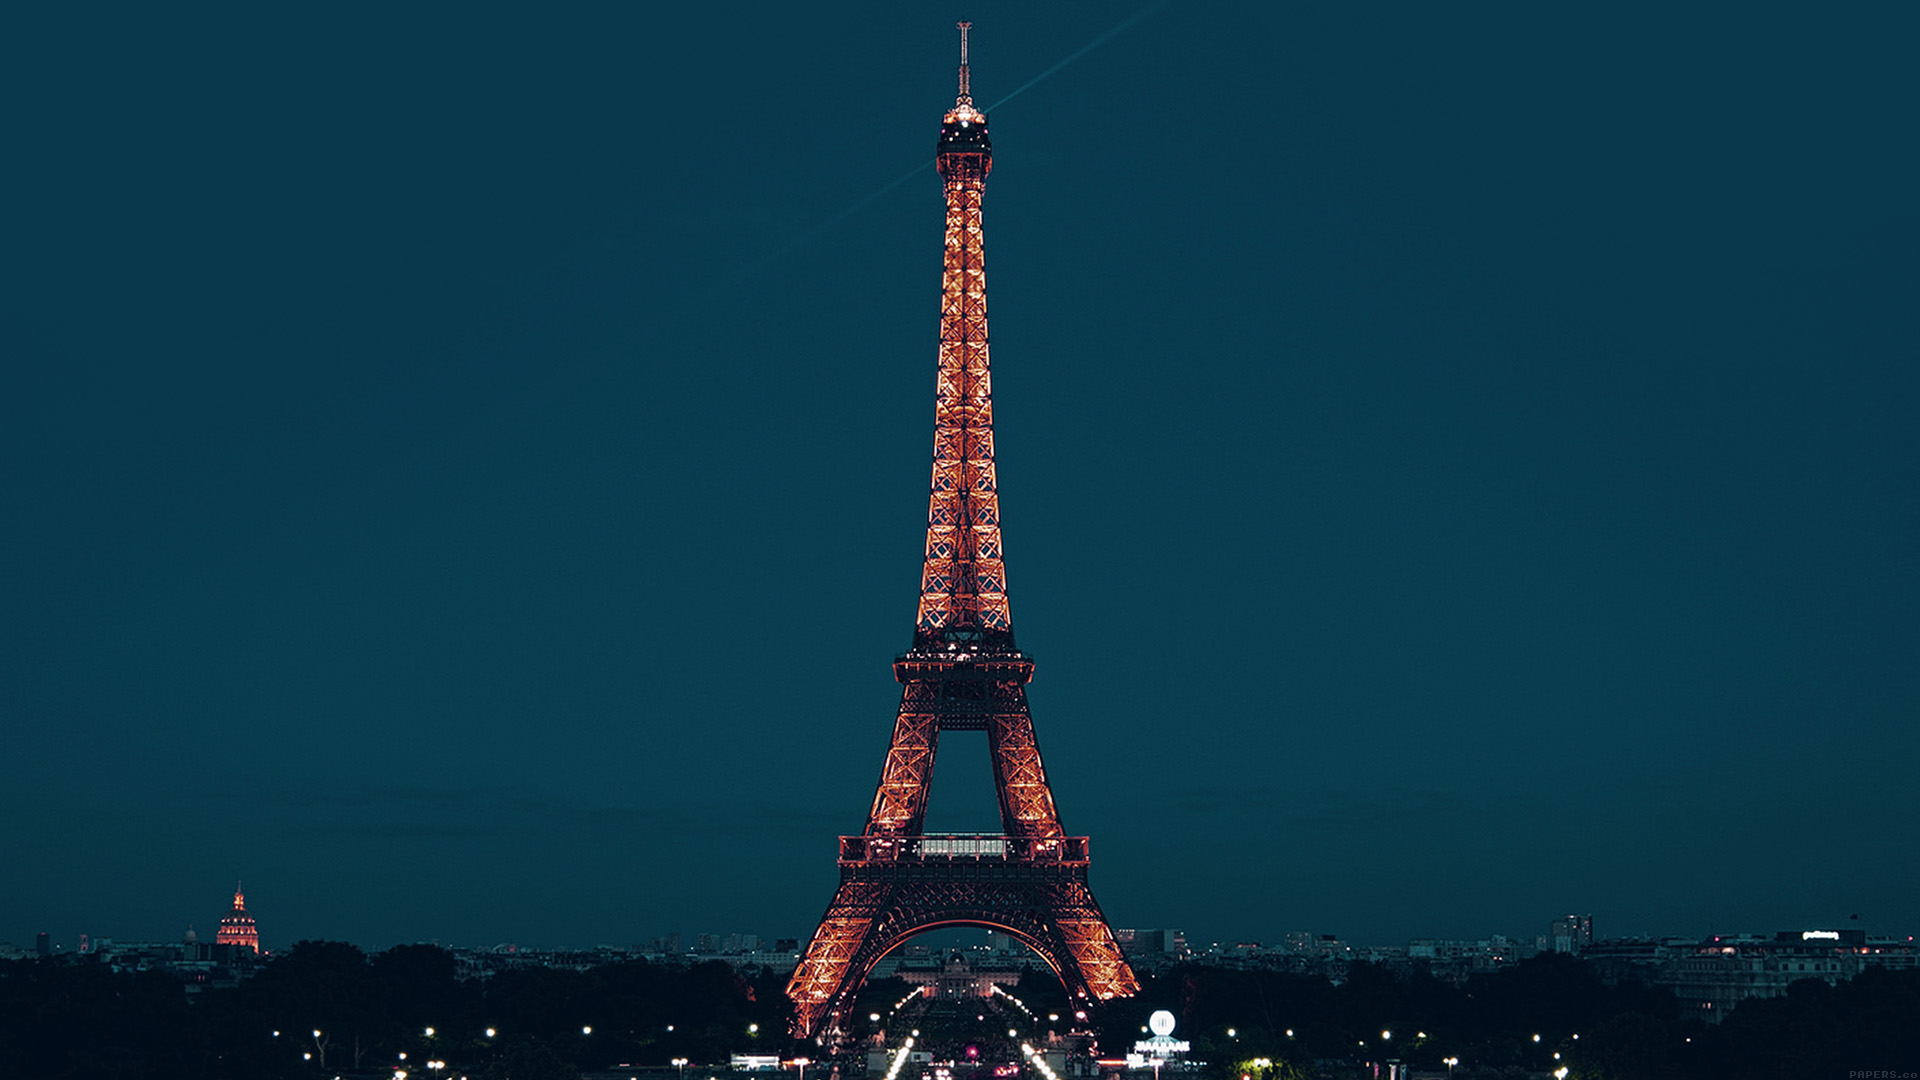 Paris Wallpaper Cute For Iphone Ml78 Paris Night France City Blue Eiffel Tower Wallpaper